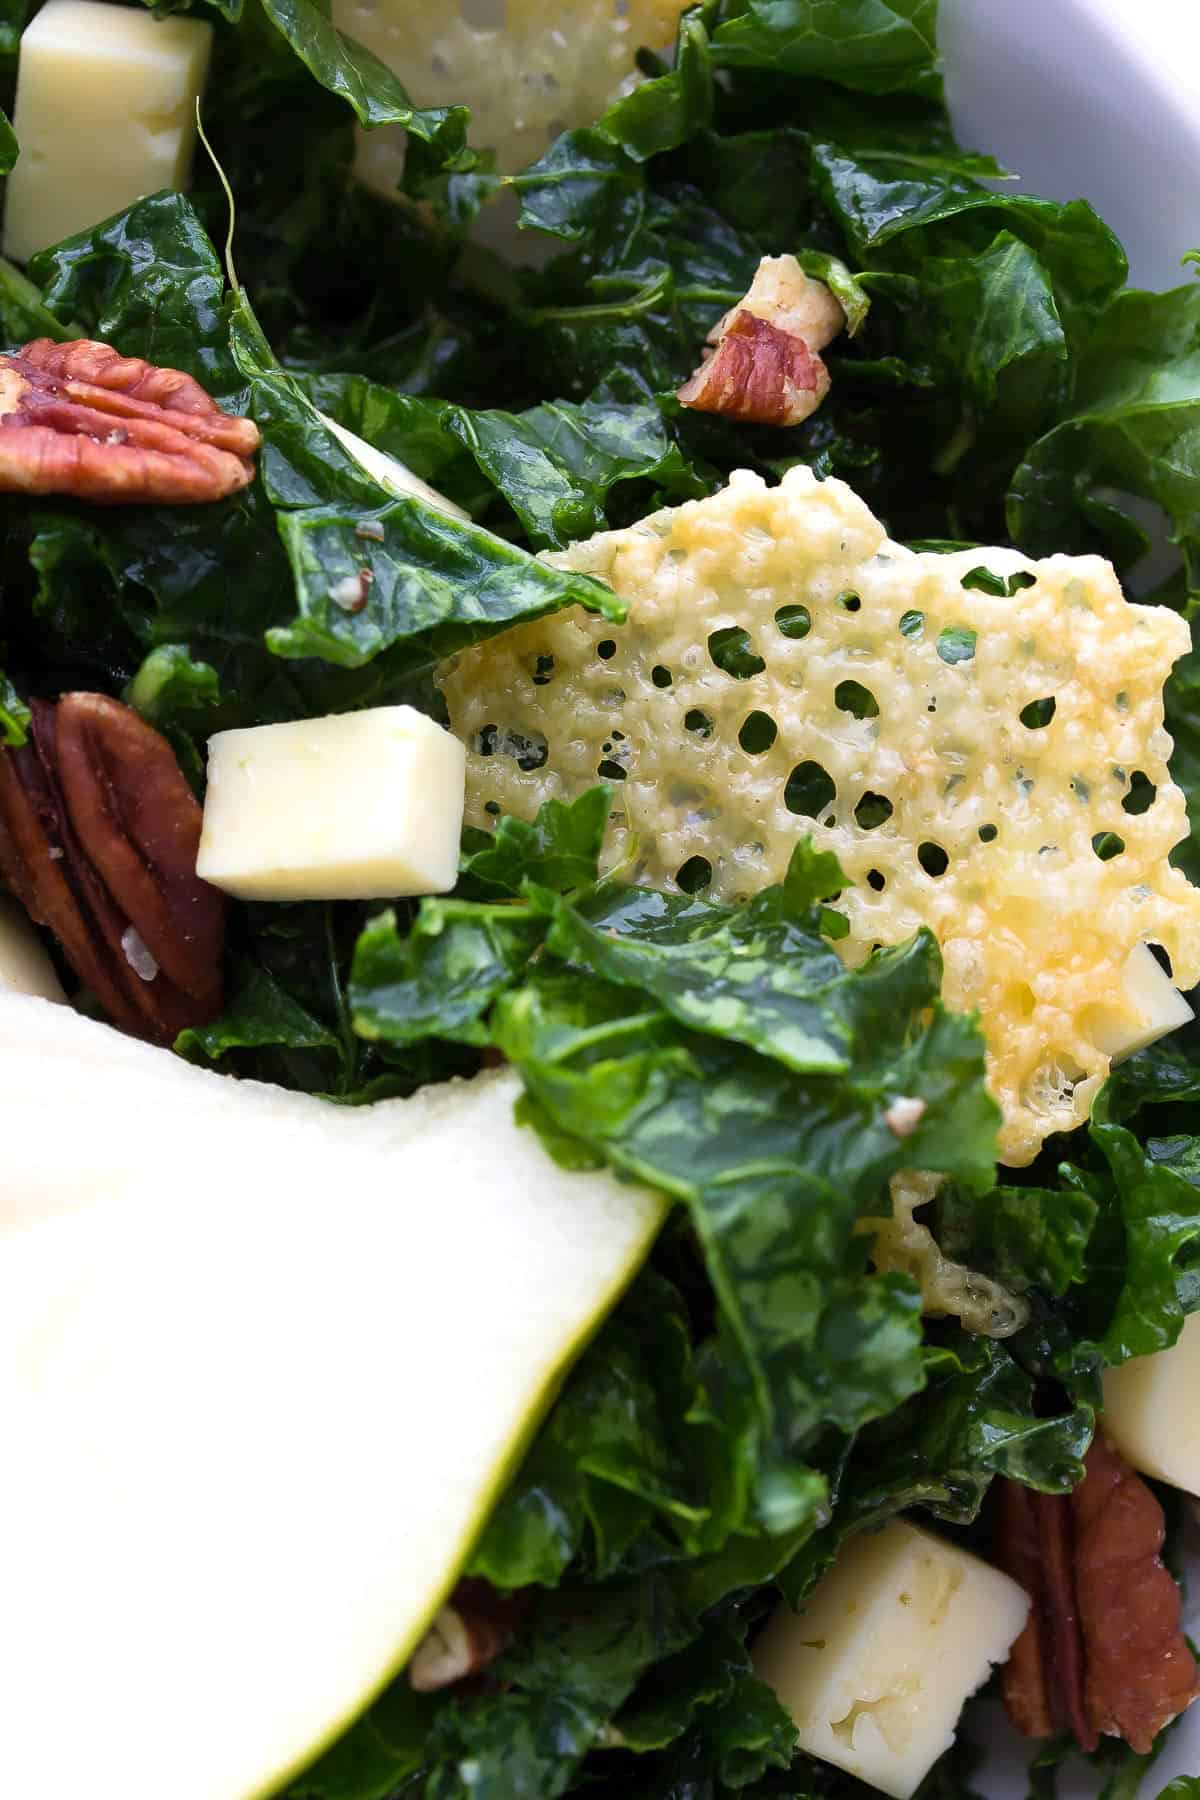 Winter Balsamic Kale Salad with Havarti Crisps, an easy holiday salad that can be made ahead of time!